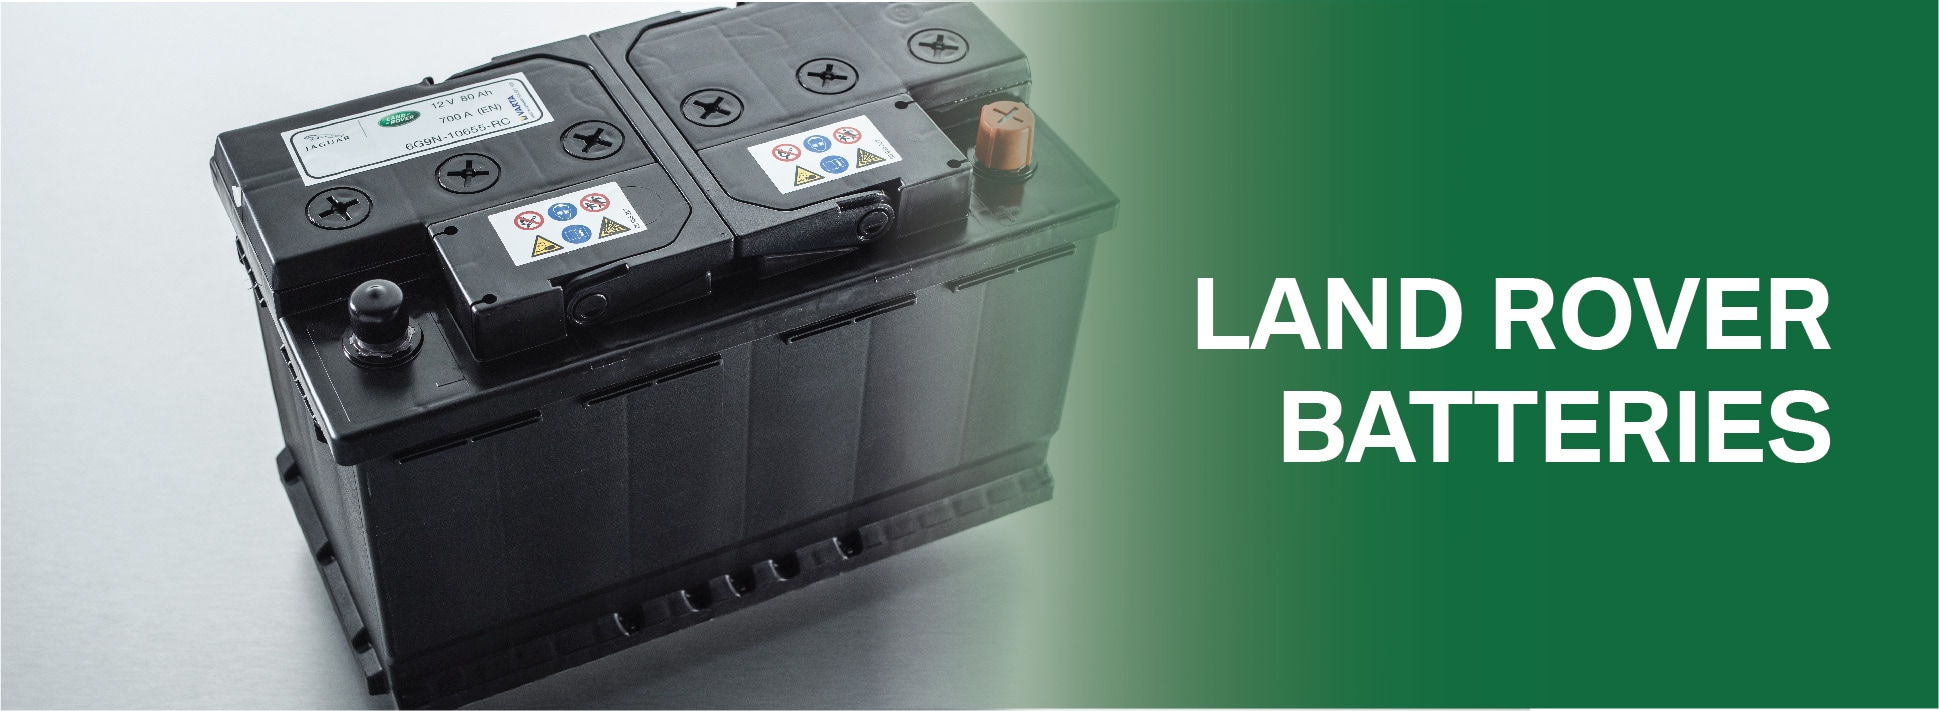 REPLACEMENT BATTERIES FOR YOUR LAND ROVER | Land Rover Lake Bluff